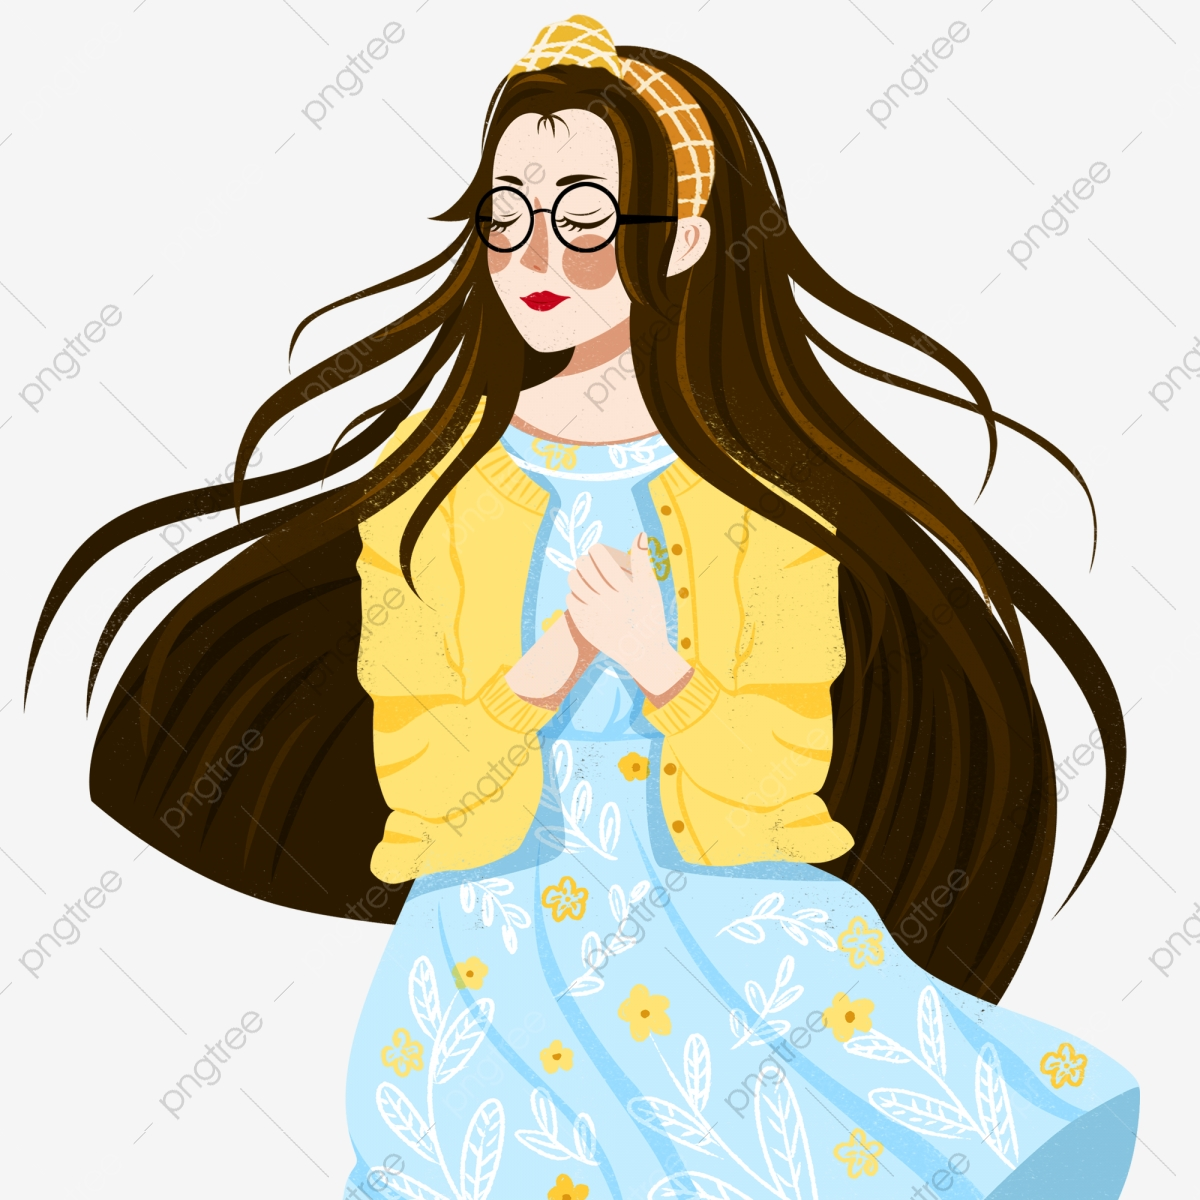 The Girls Wear Glasses Png Images Vector And Psd Files Free Download On Pngtree